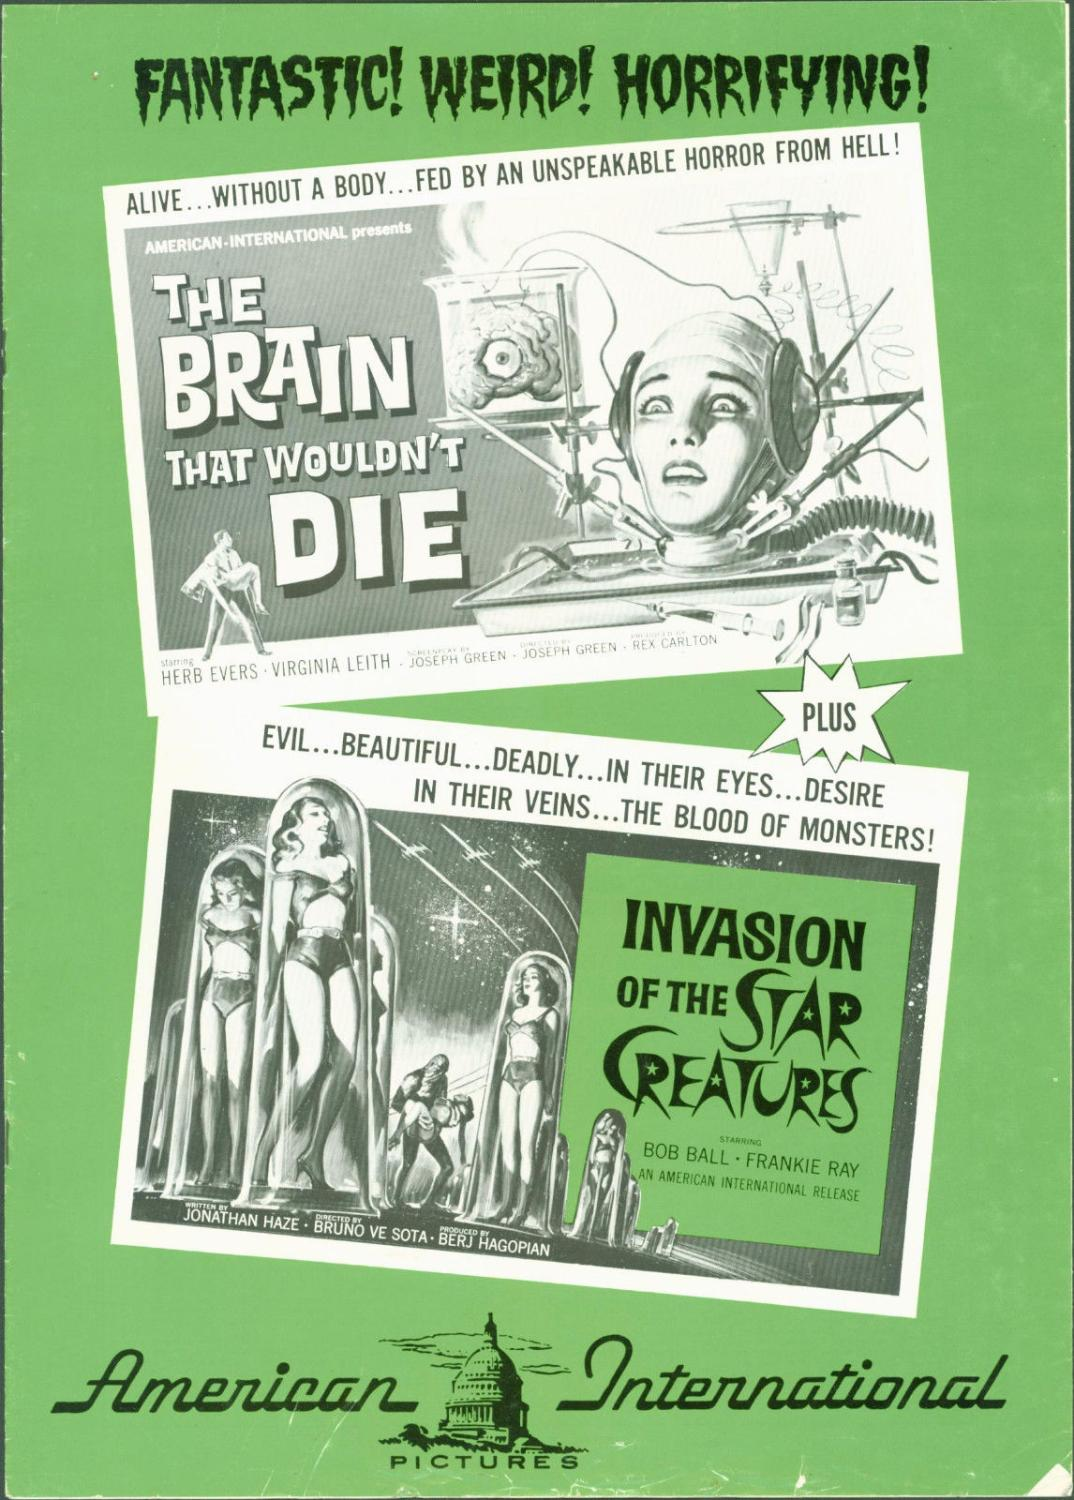 1962 The Brain That Wouldn't Die / Invasion of Star Creatures vintage pressbook Comic Book Softcover